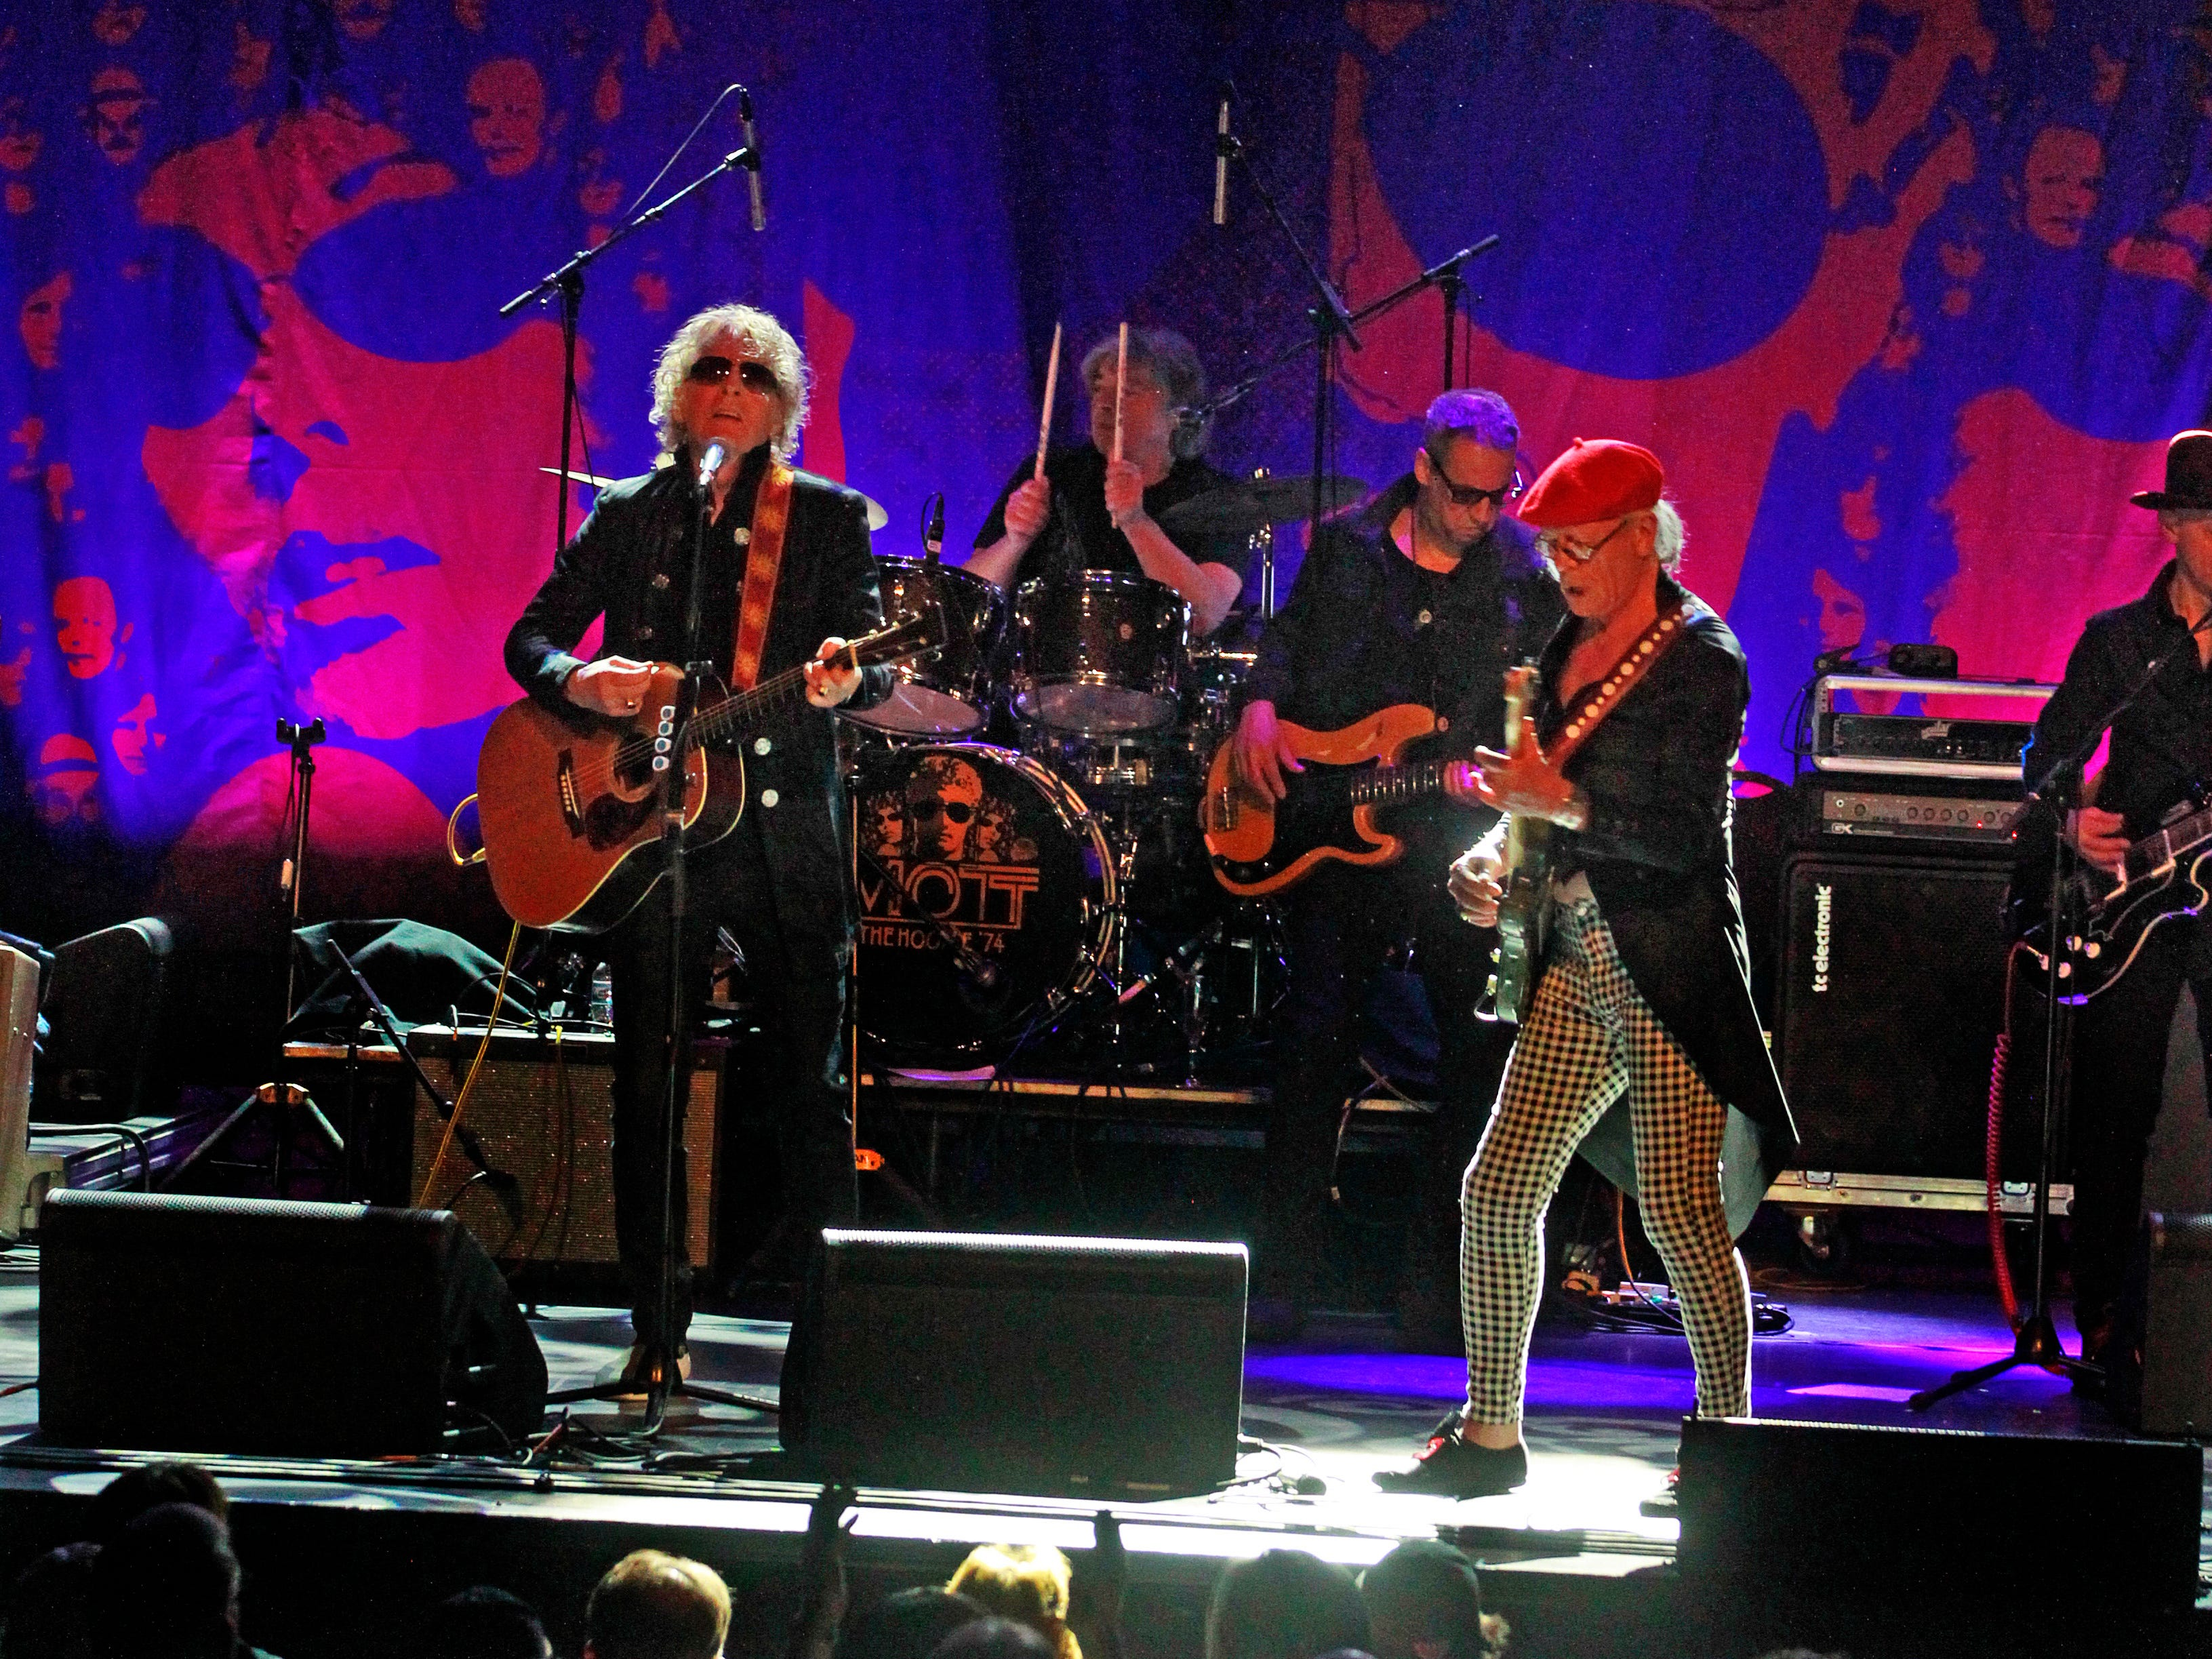 Ian Hunter, left and Ariel Bender,  right, from the Mott The Hoople, perform at the Miller High Life Theatre in Milwaukee.